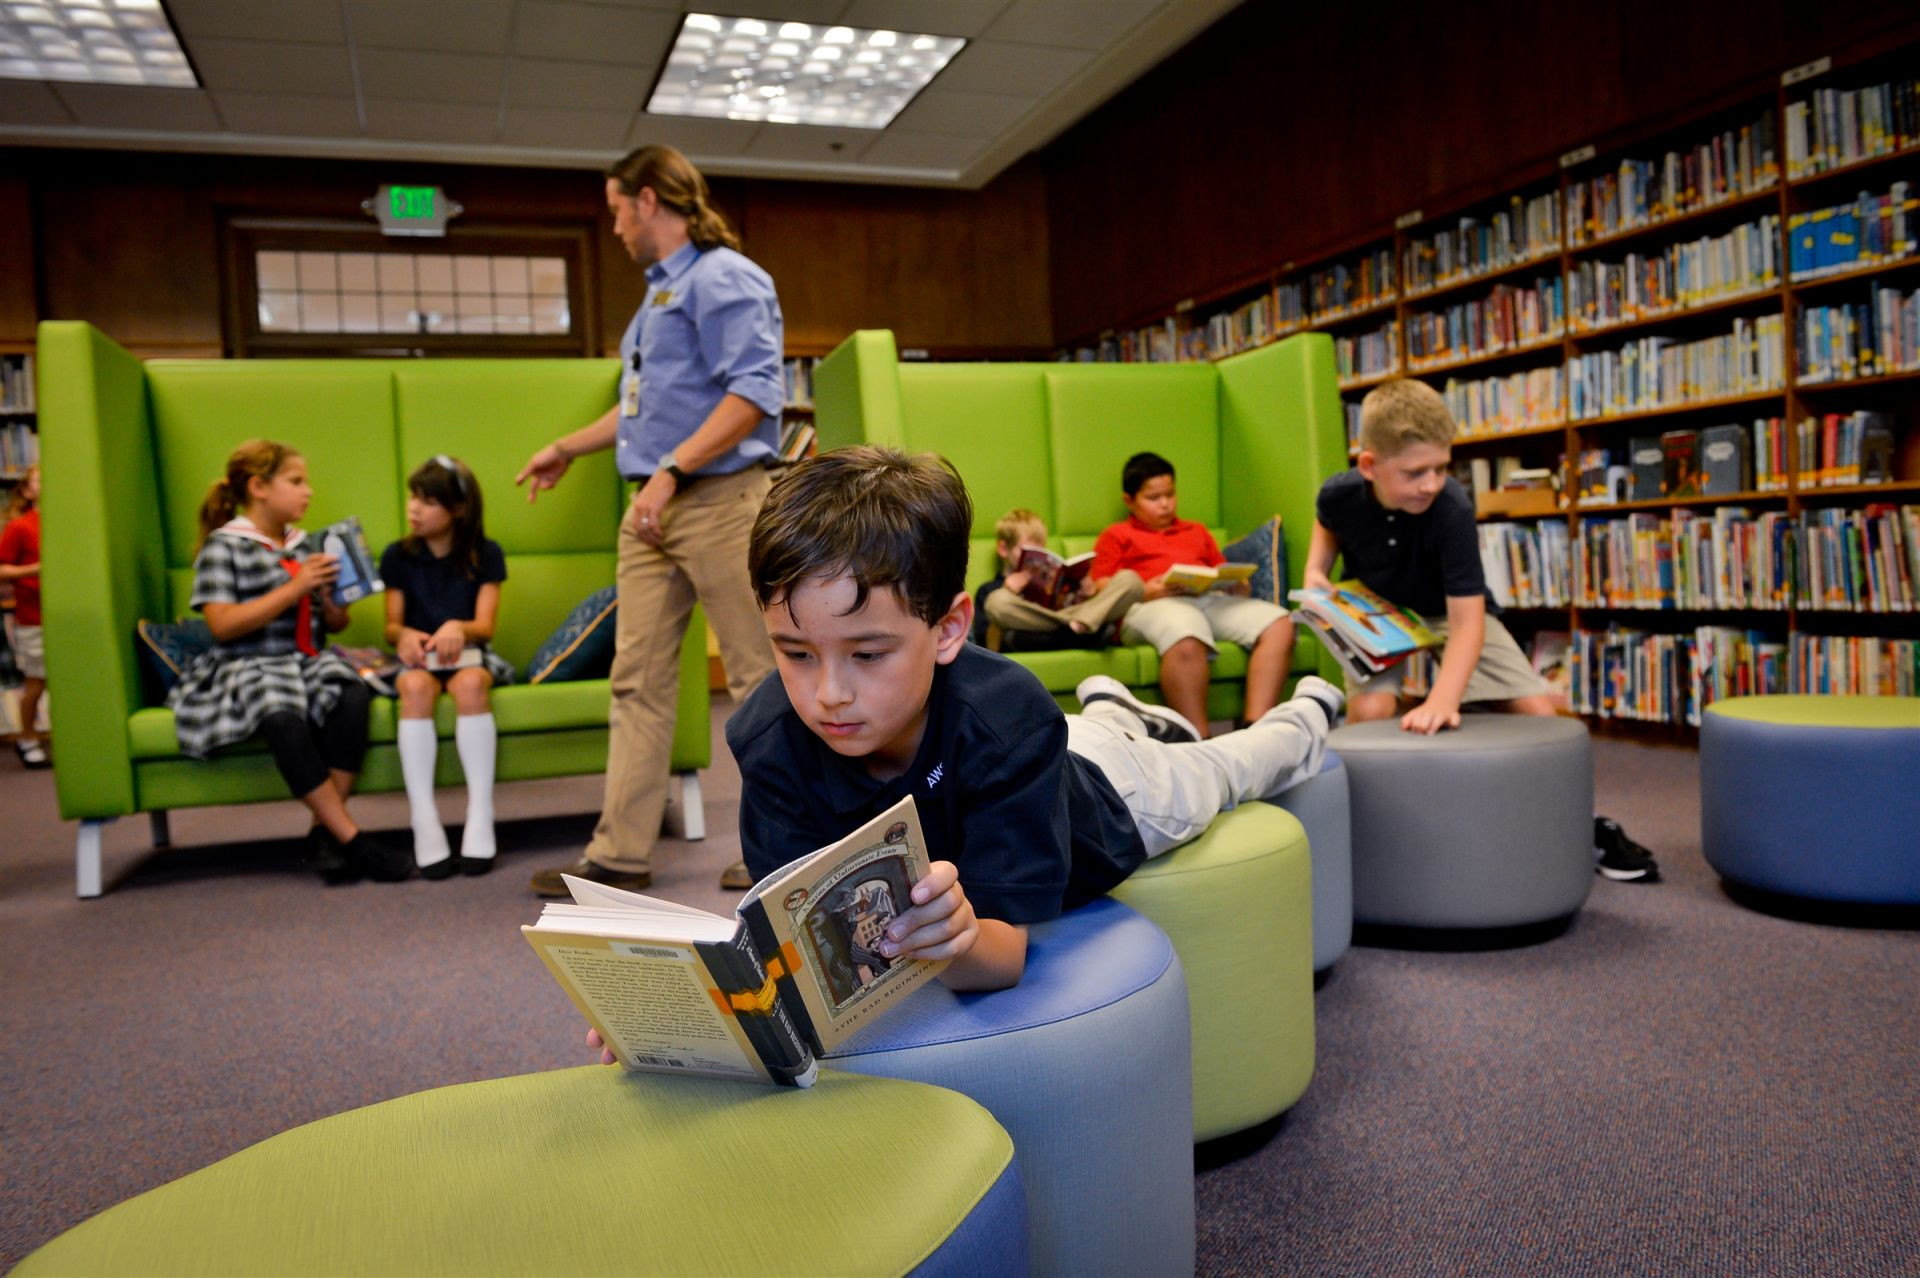 Fun, flexible modular furniture inspires a love of reading.